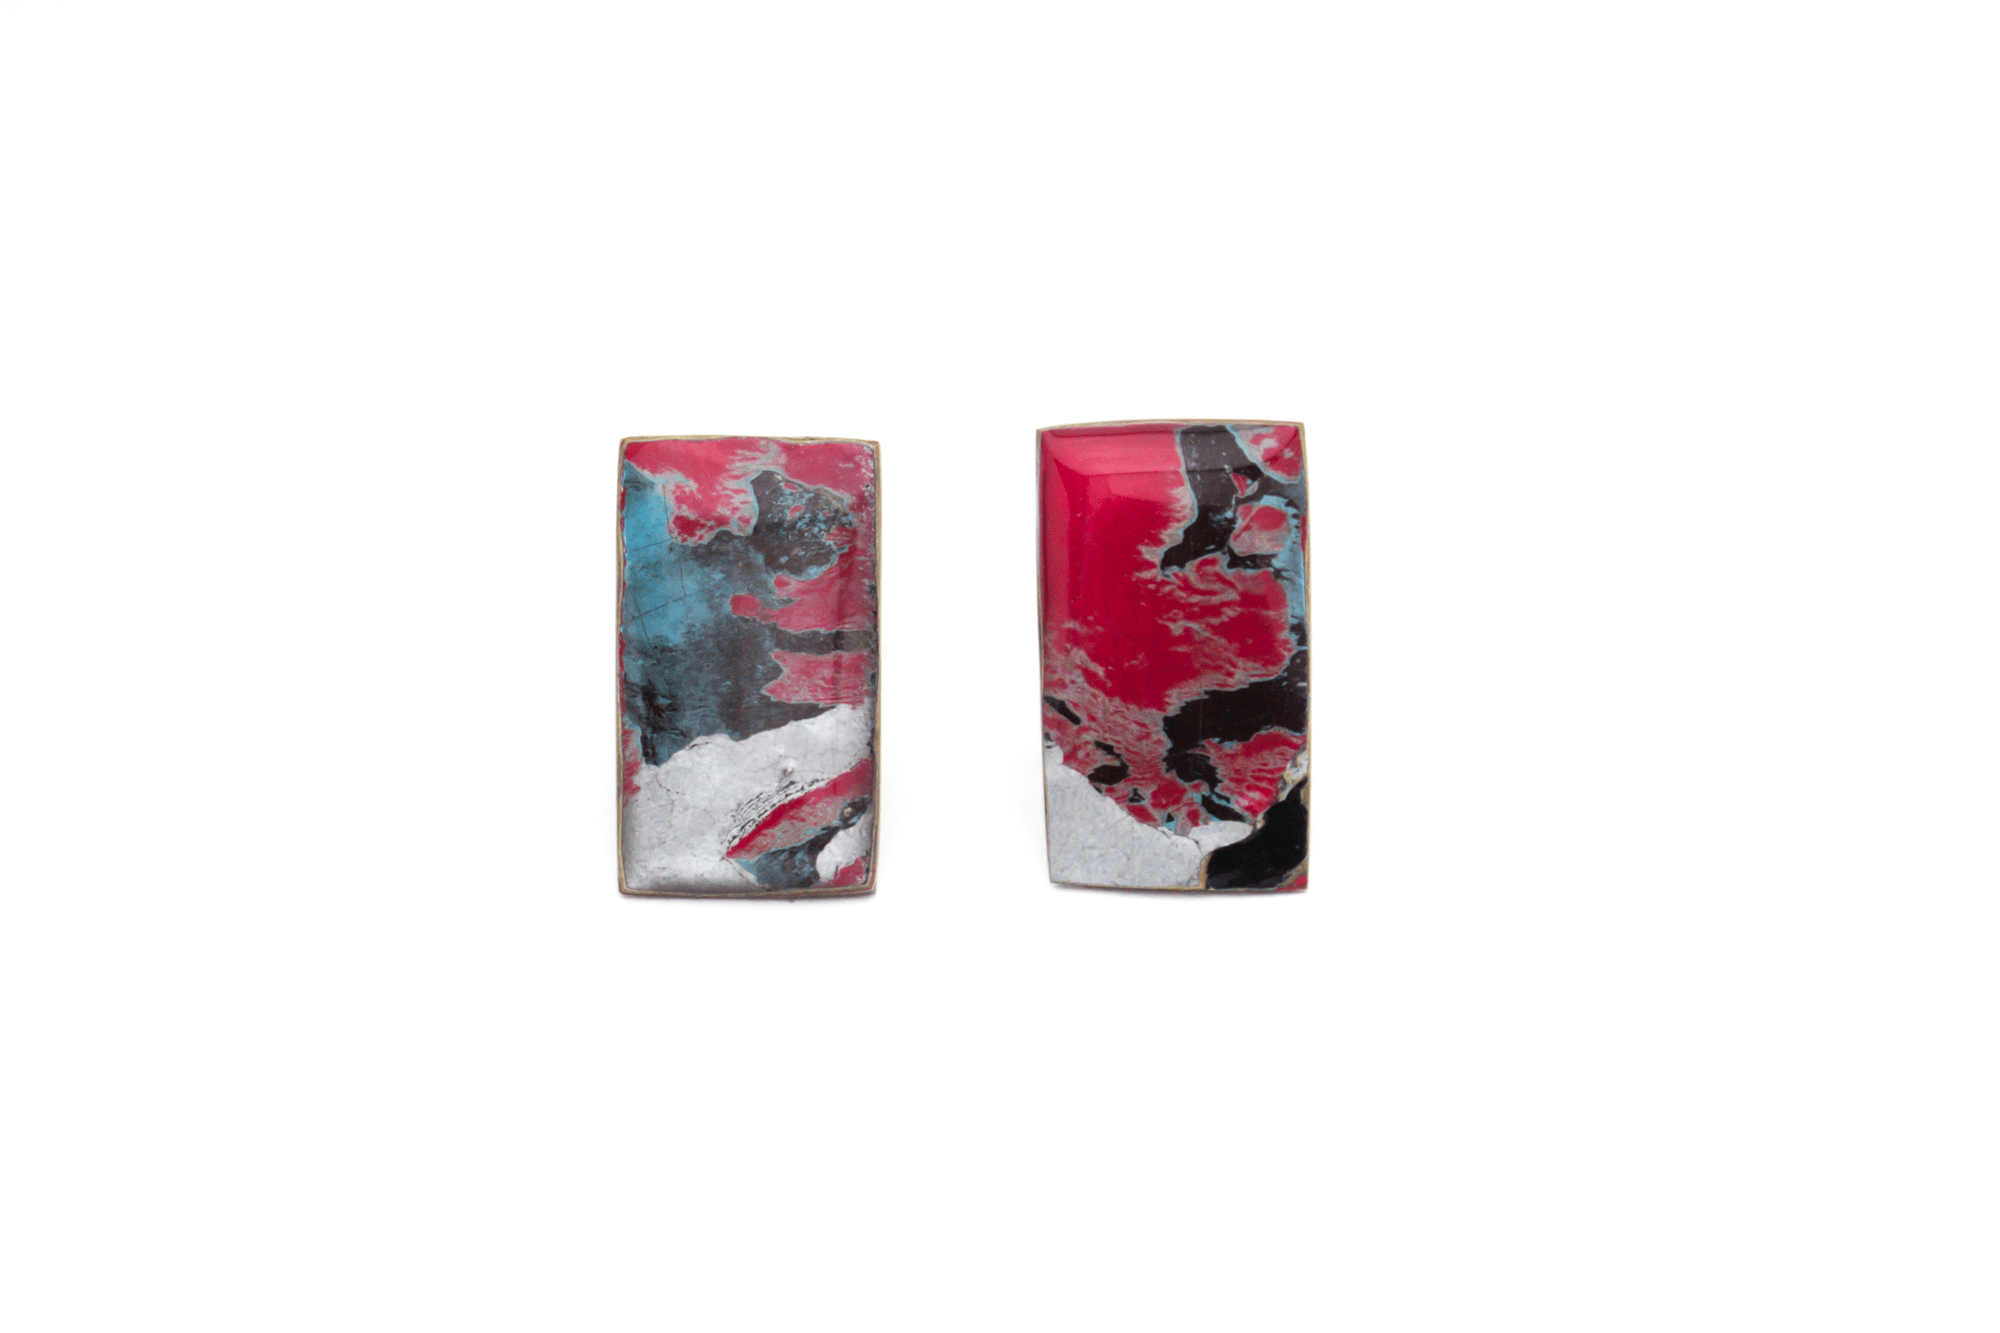 Unique, statement graffiti earrings. Completely one-of-a-kind and handmade in Melbourne from locally sourced, recycled materials.